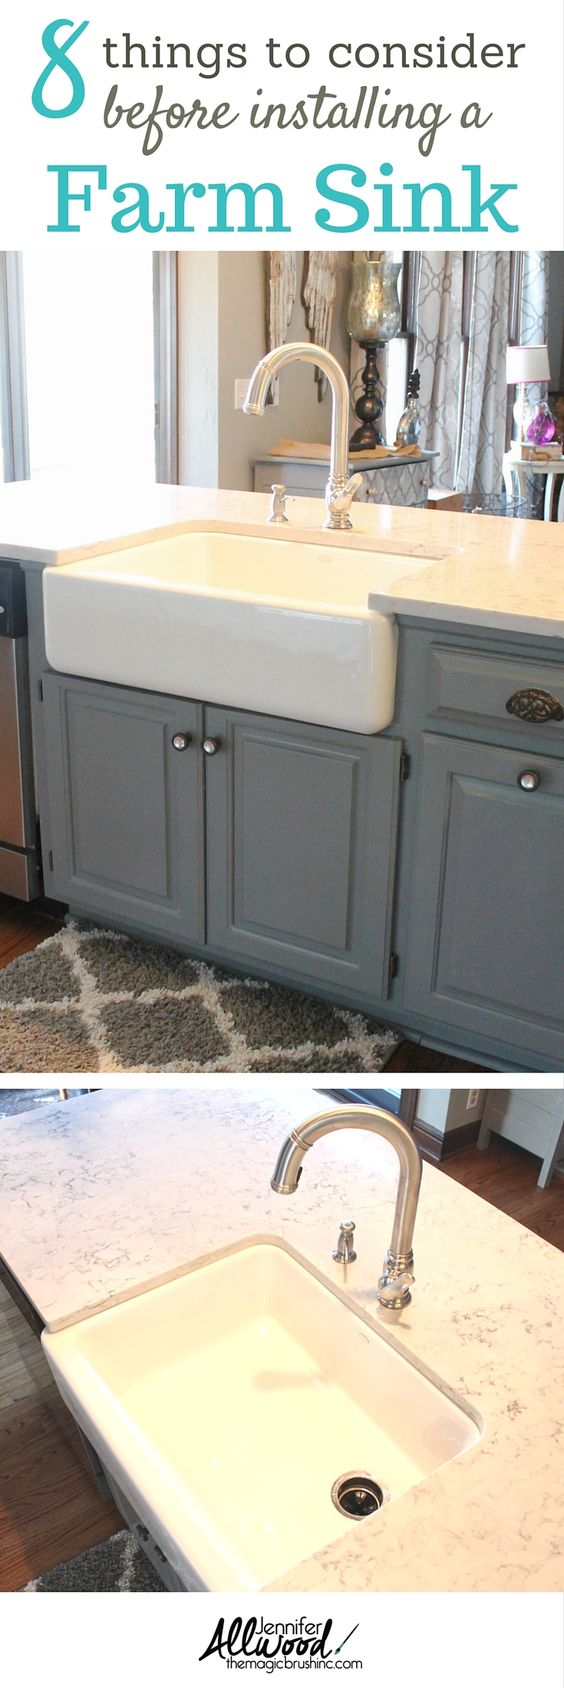 187 kitchen 187 kitchen sinks 187 nativestone 187 farmhouse double bowl - We Recently Updated Our Gray Kitchen With A New Farmhouse Sink We Are Obsessed With